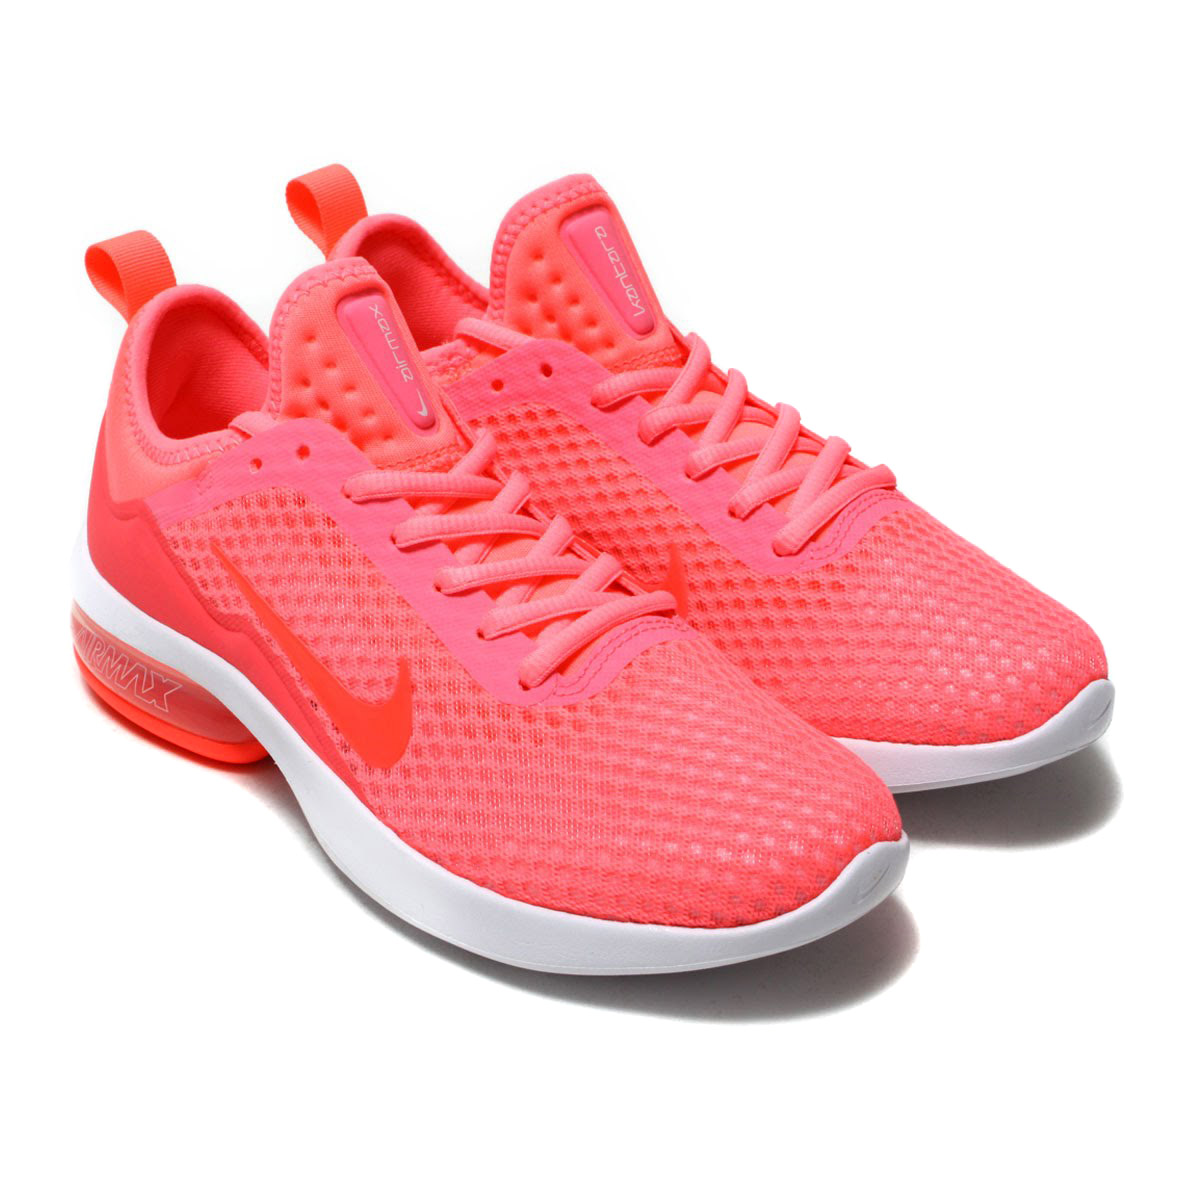 7e040cc9683d Running shoes of the MAX air deployment. Booties design and seamless mesh  upper wrapping up are comfortable  wear it